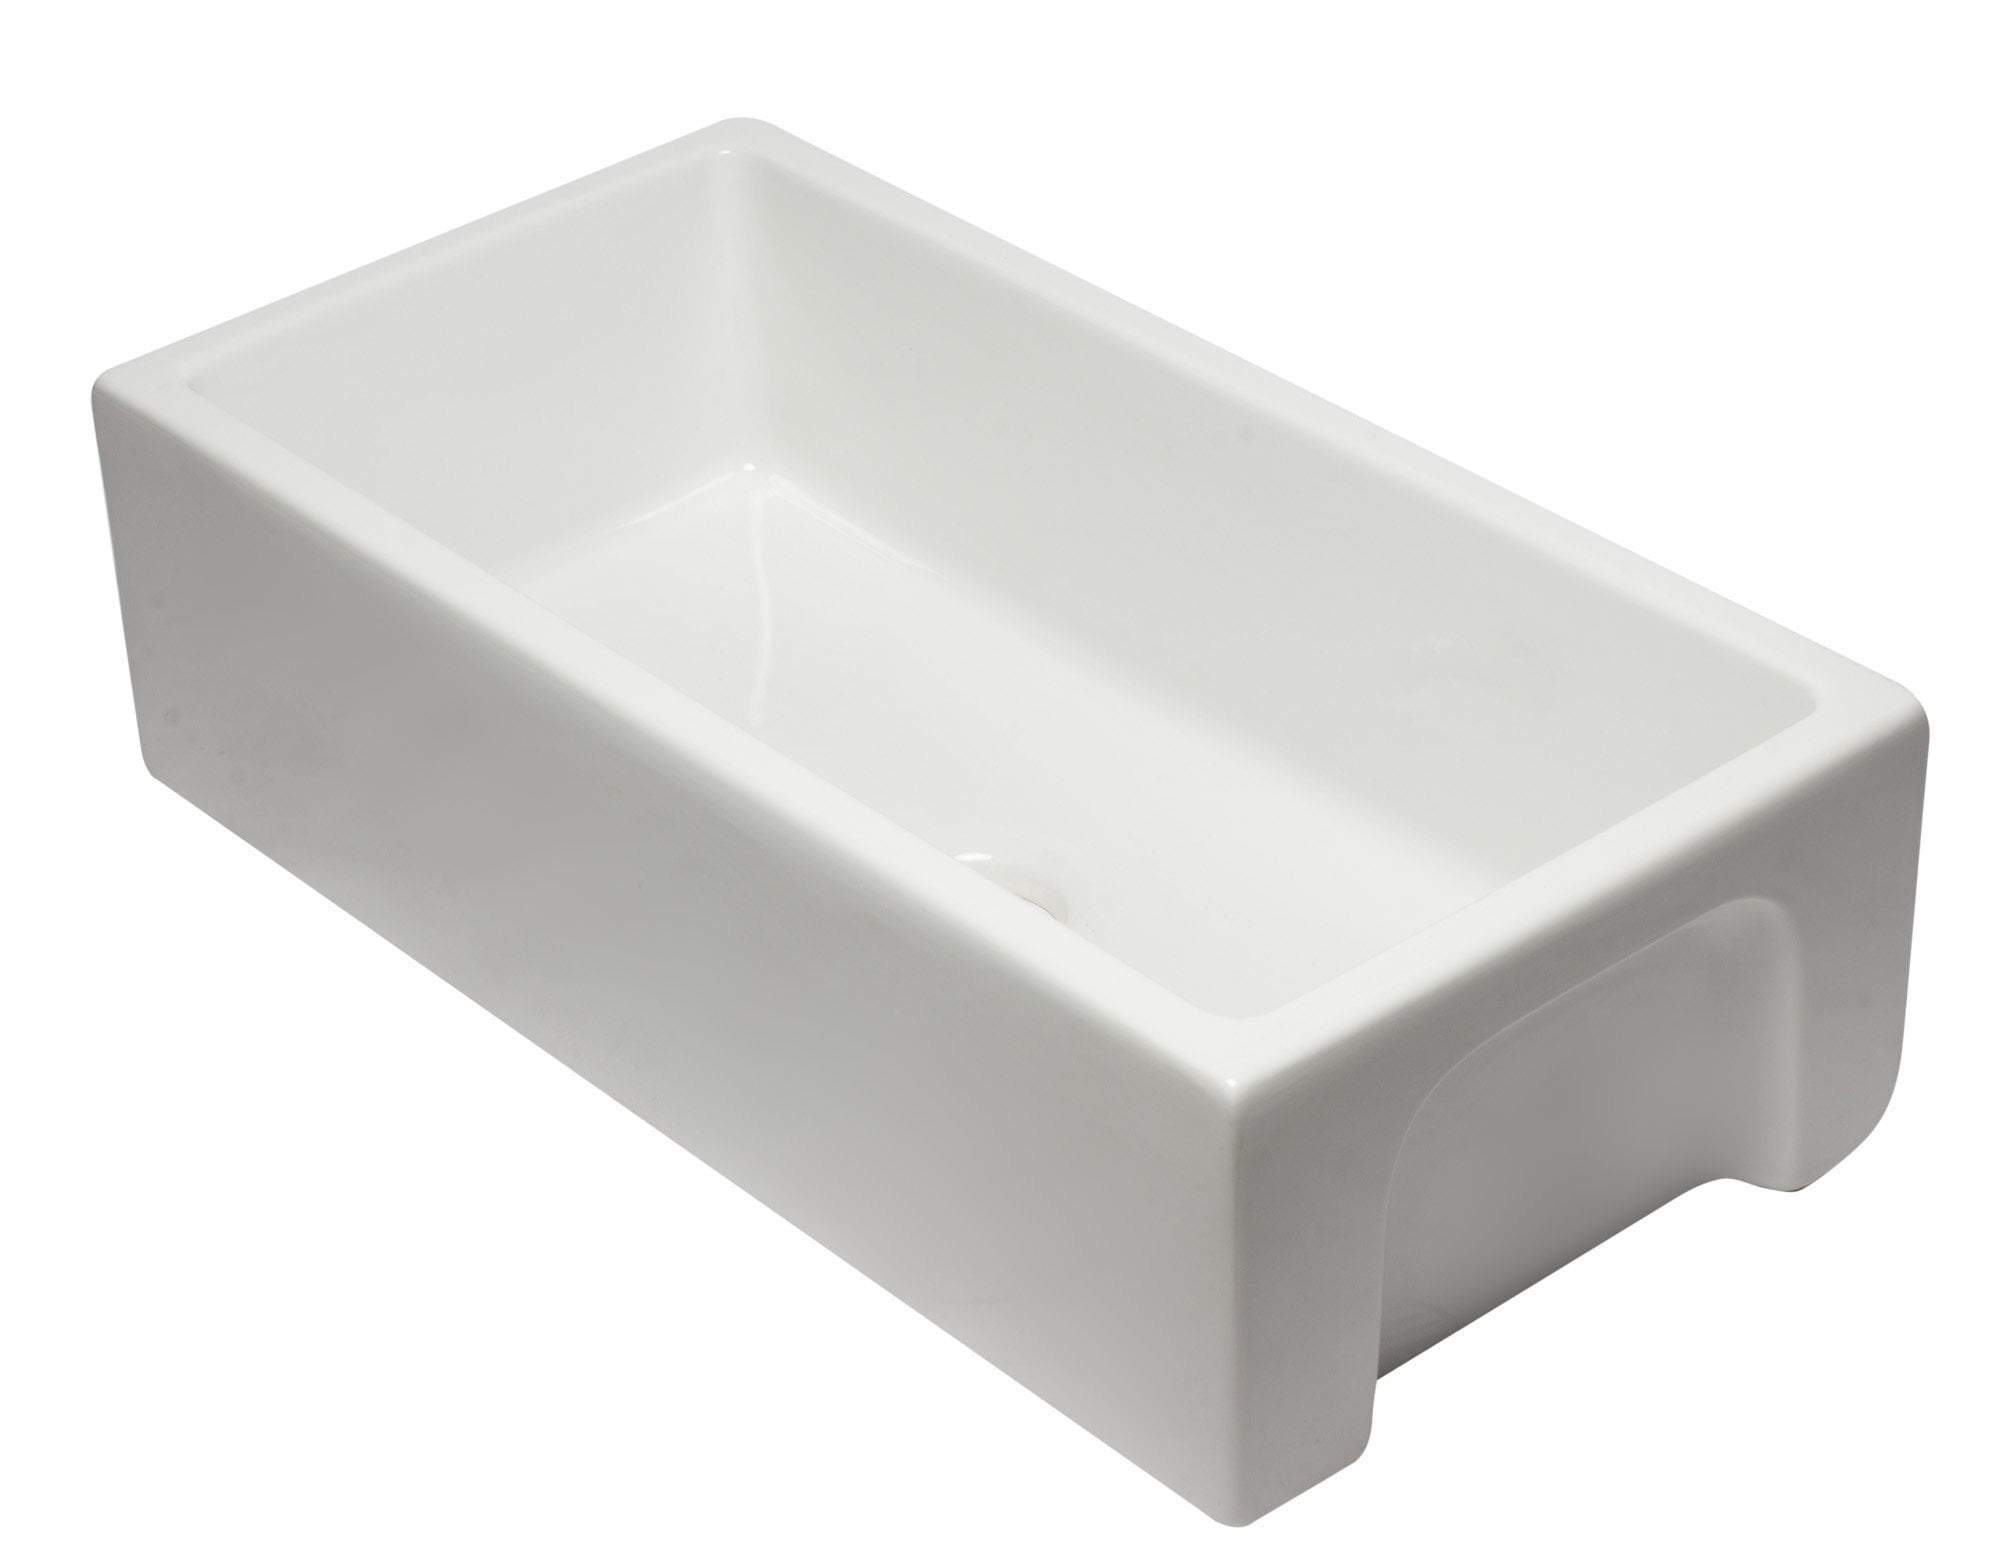 36 inch White Reversible Smooth / Fluted Single Bowl Fireclay Farm Sink